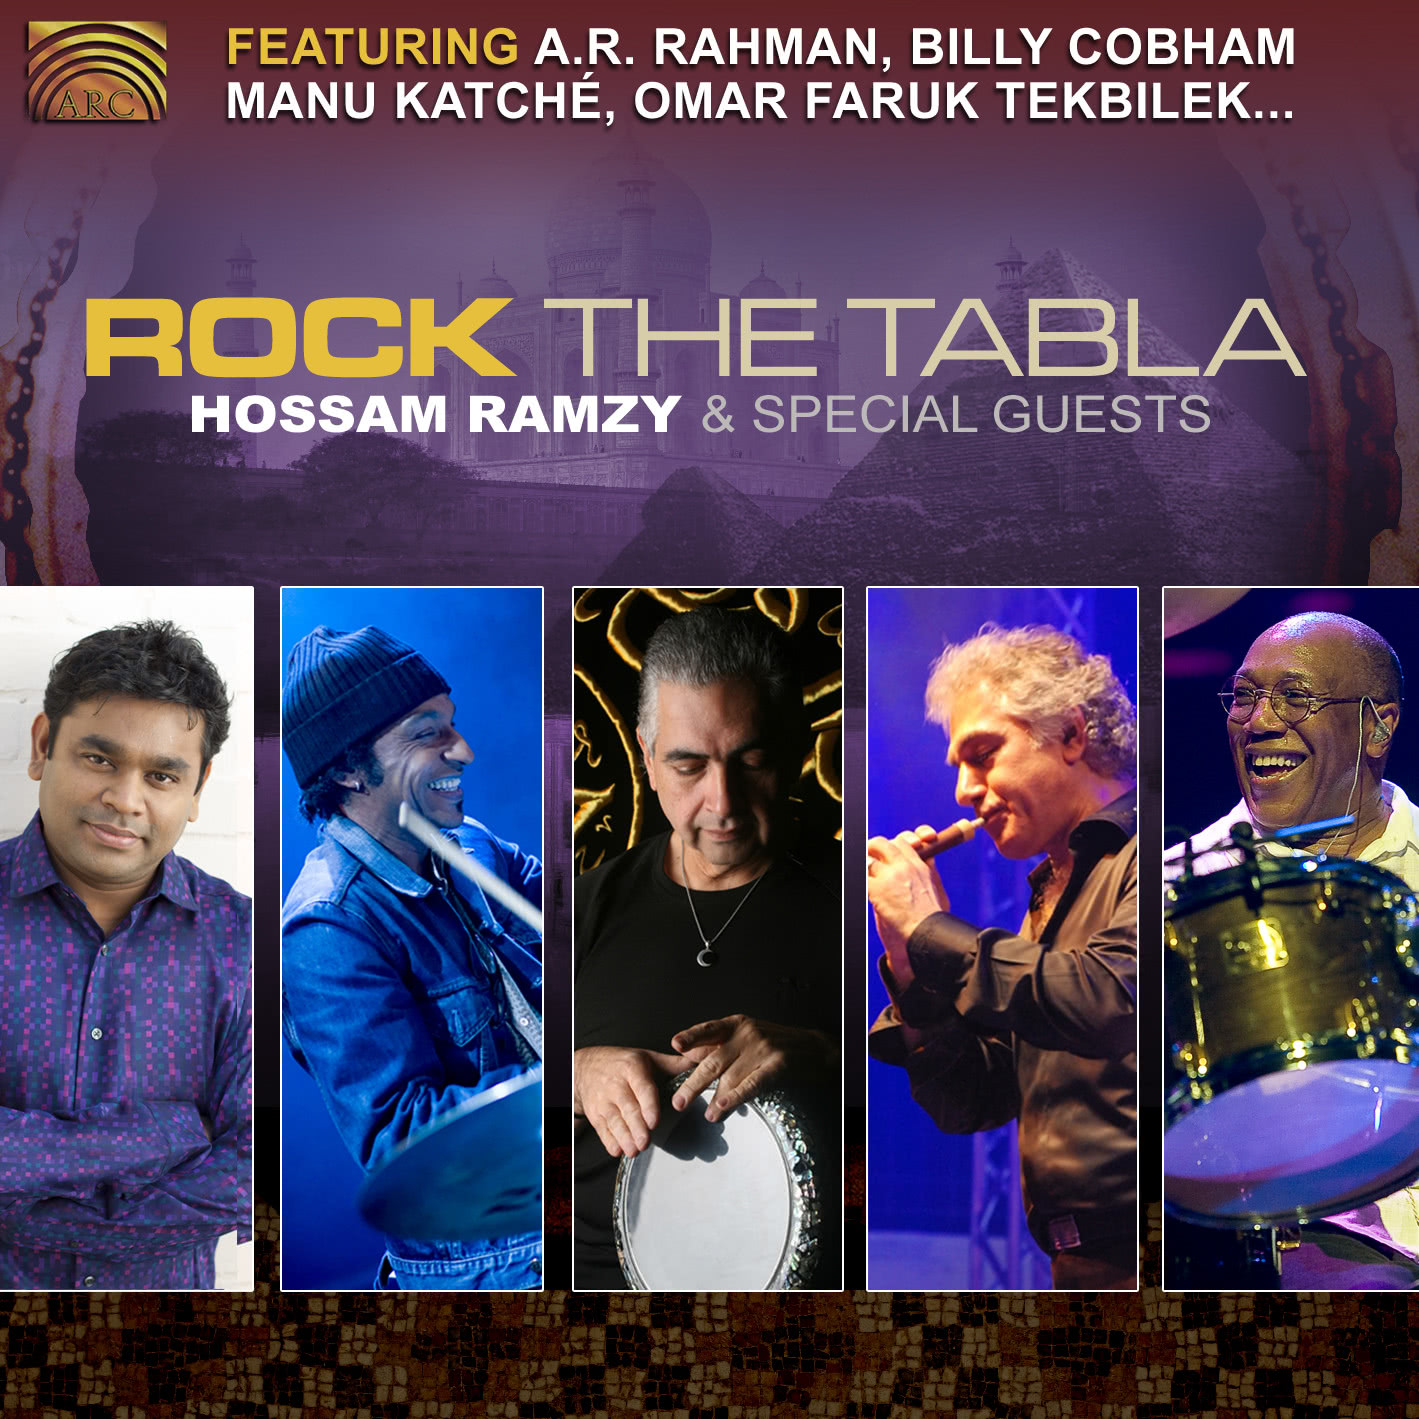 EUCD2349 Rock the Tabla - featuring A.R. Rahman, Billy Cobham, Manu Katché, Omar Faruk Tekbilek…